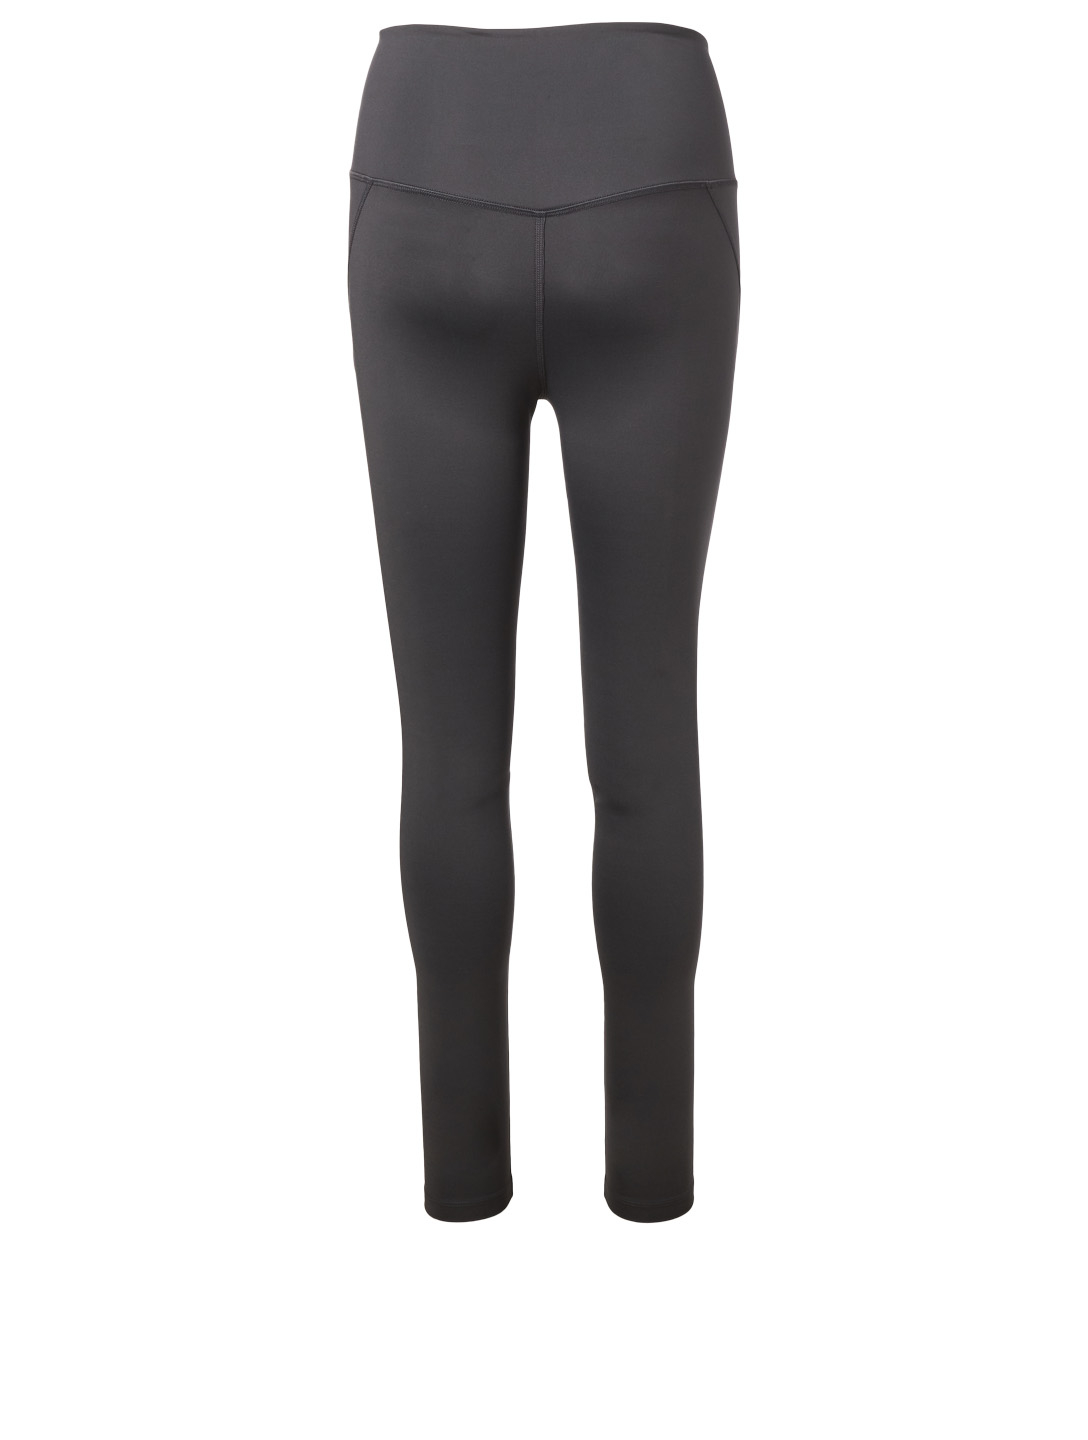 GIRLFRIEND COLLECTIVE Compressive High-Rise Legging H Project Grey